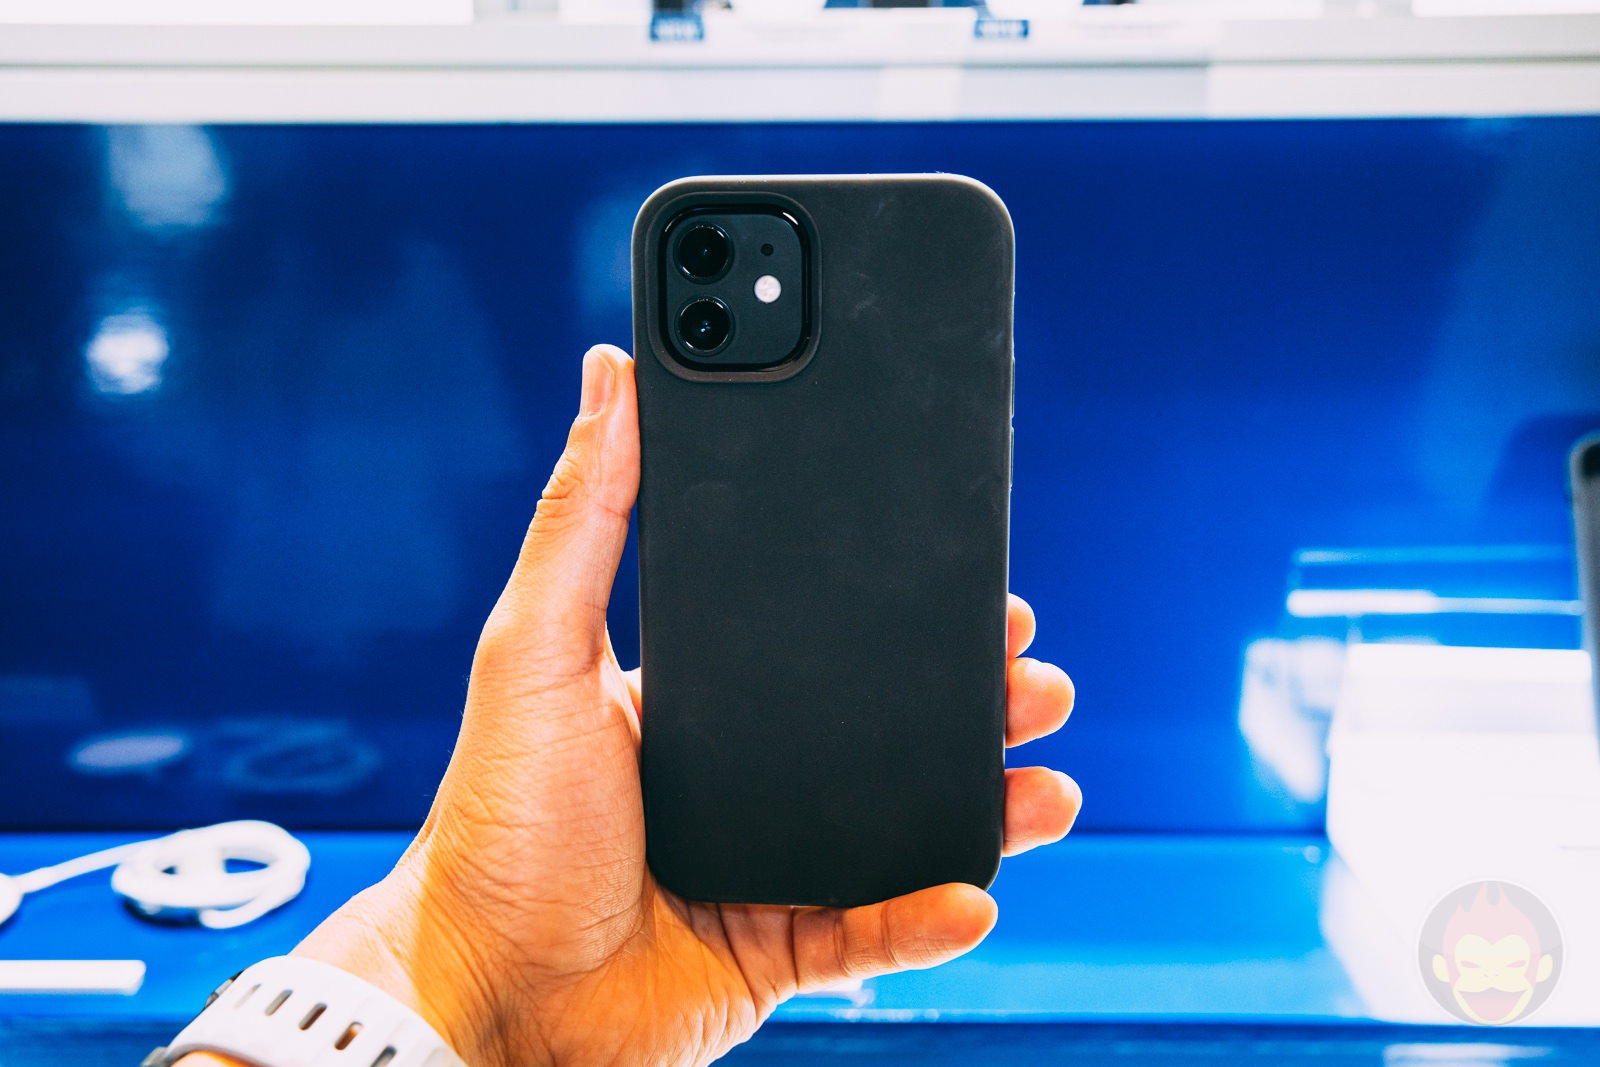 Anker Magnetic Silicone Case for iPhone12 12Pro Handson 07